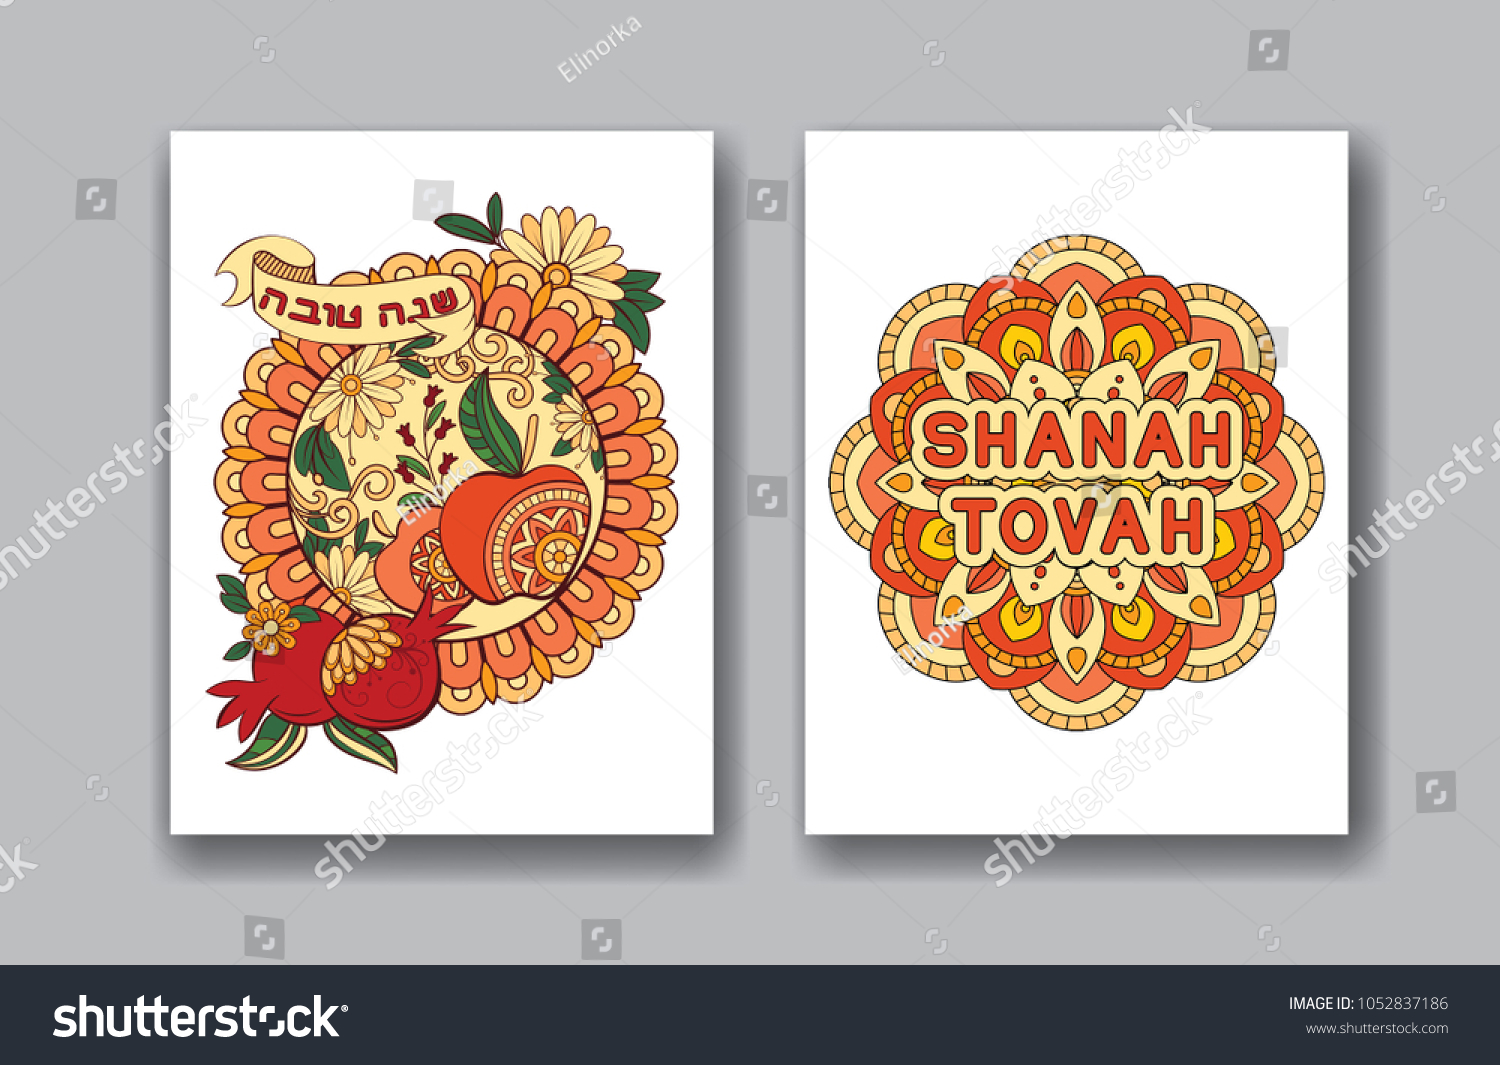 Rosh Hashanah Jewish New Year Greeting Stock Vector 1052837186